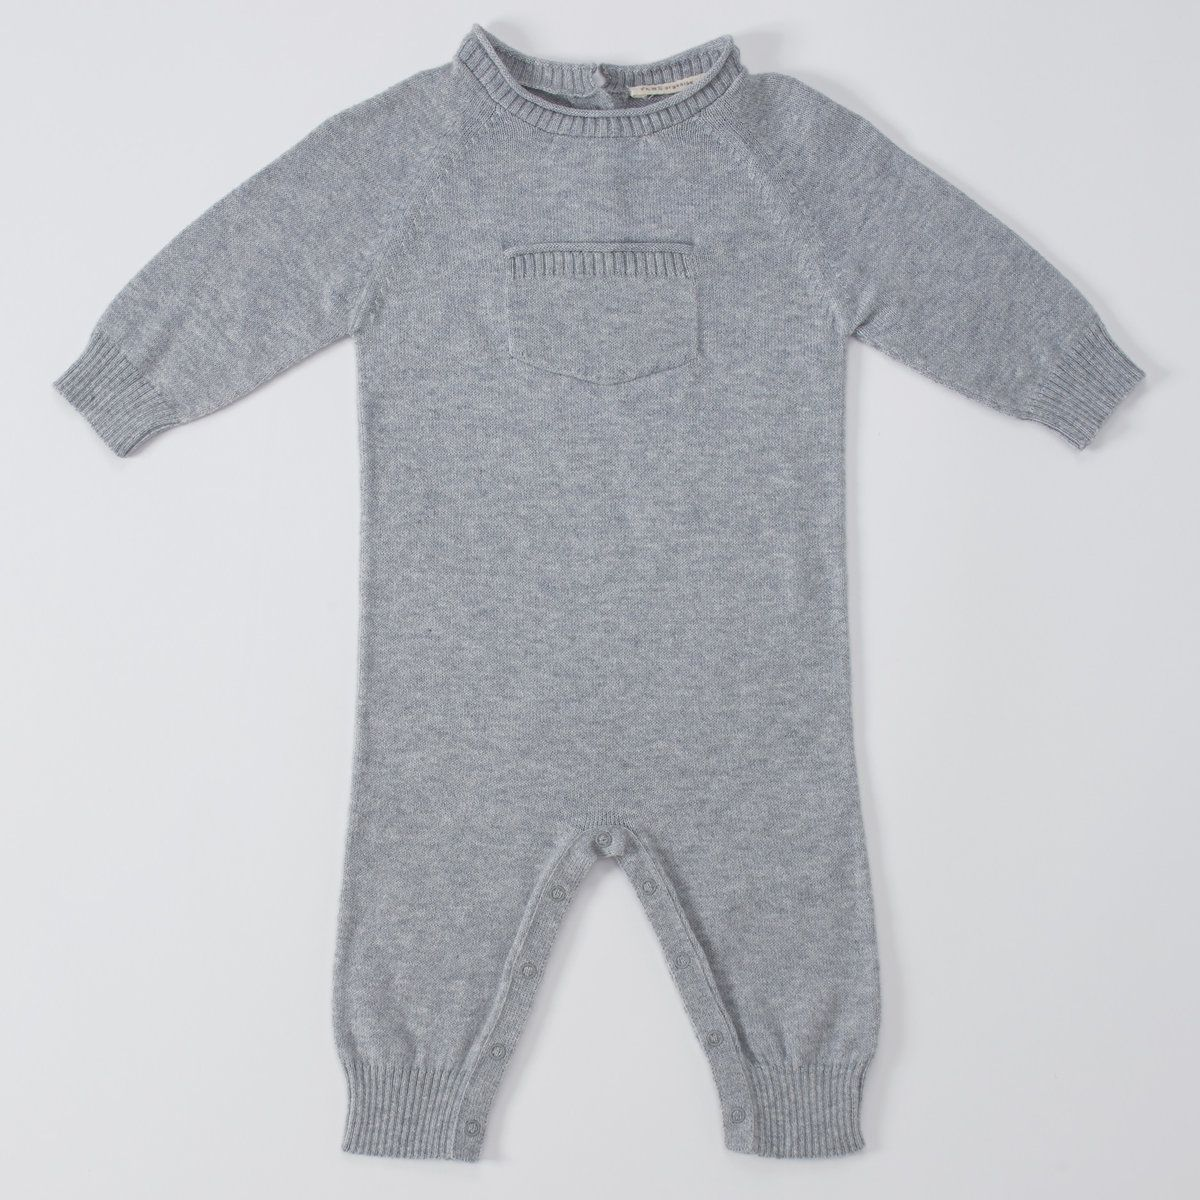 Luxurious Organic Infant And Baby Clothing Onesies Sweater